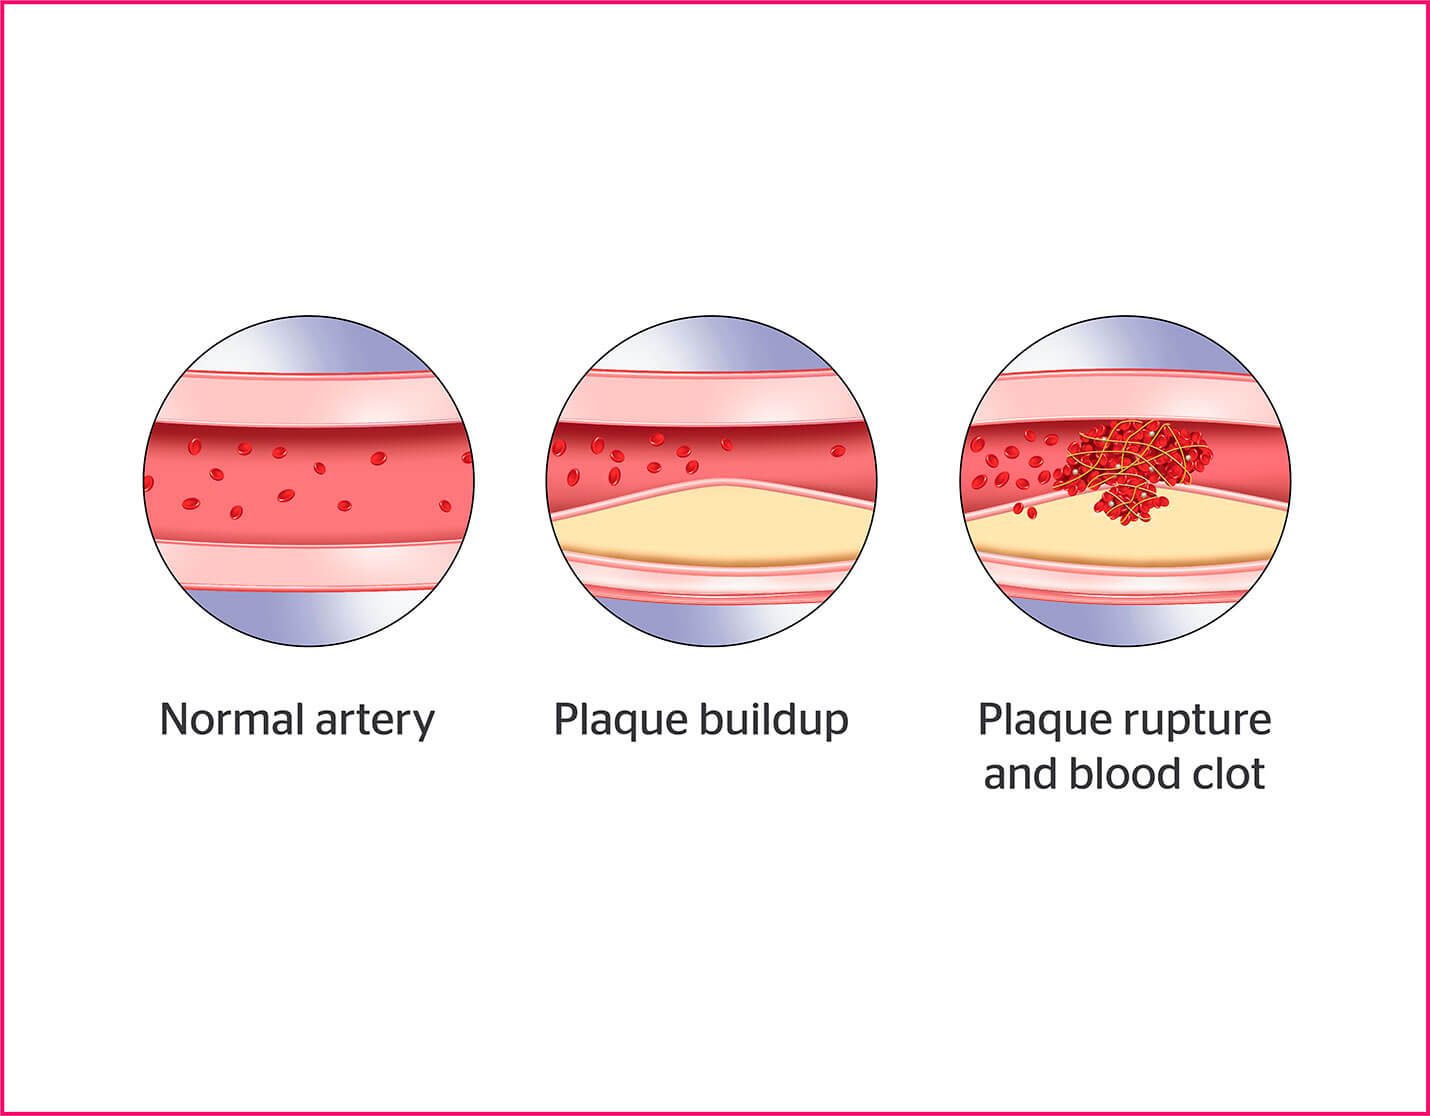 Diagram of normal artery, plaque buildup, and plaque rupture and blood clot